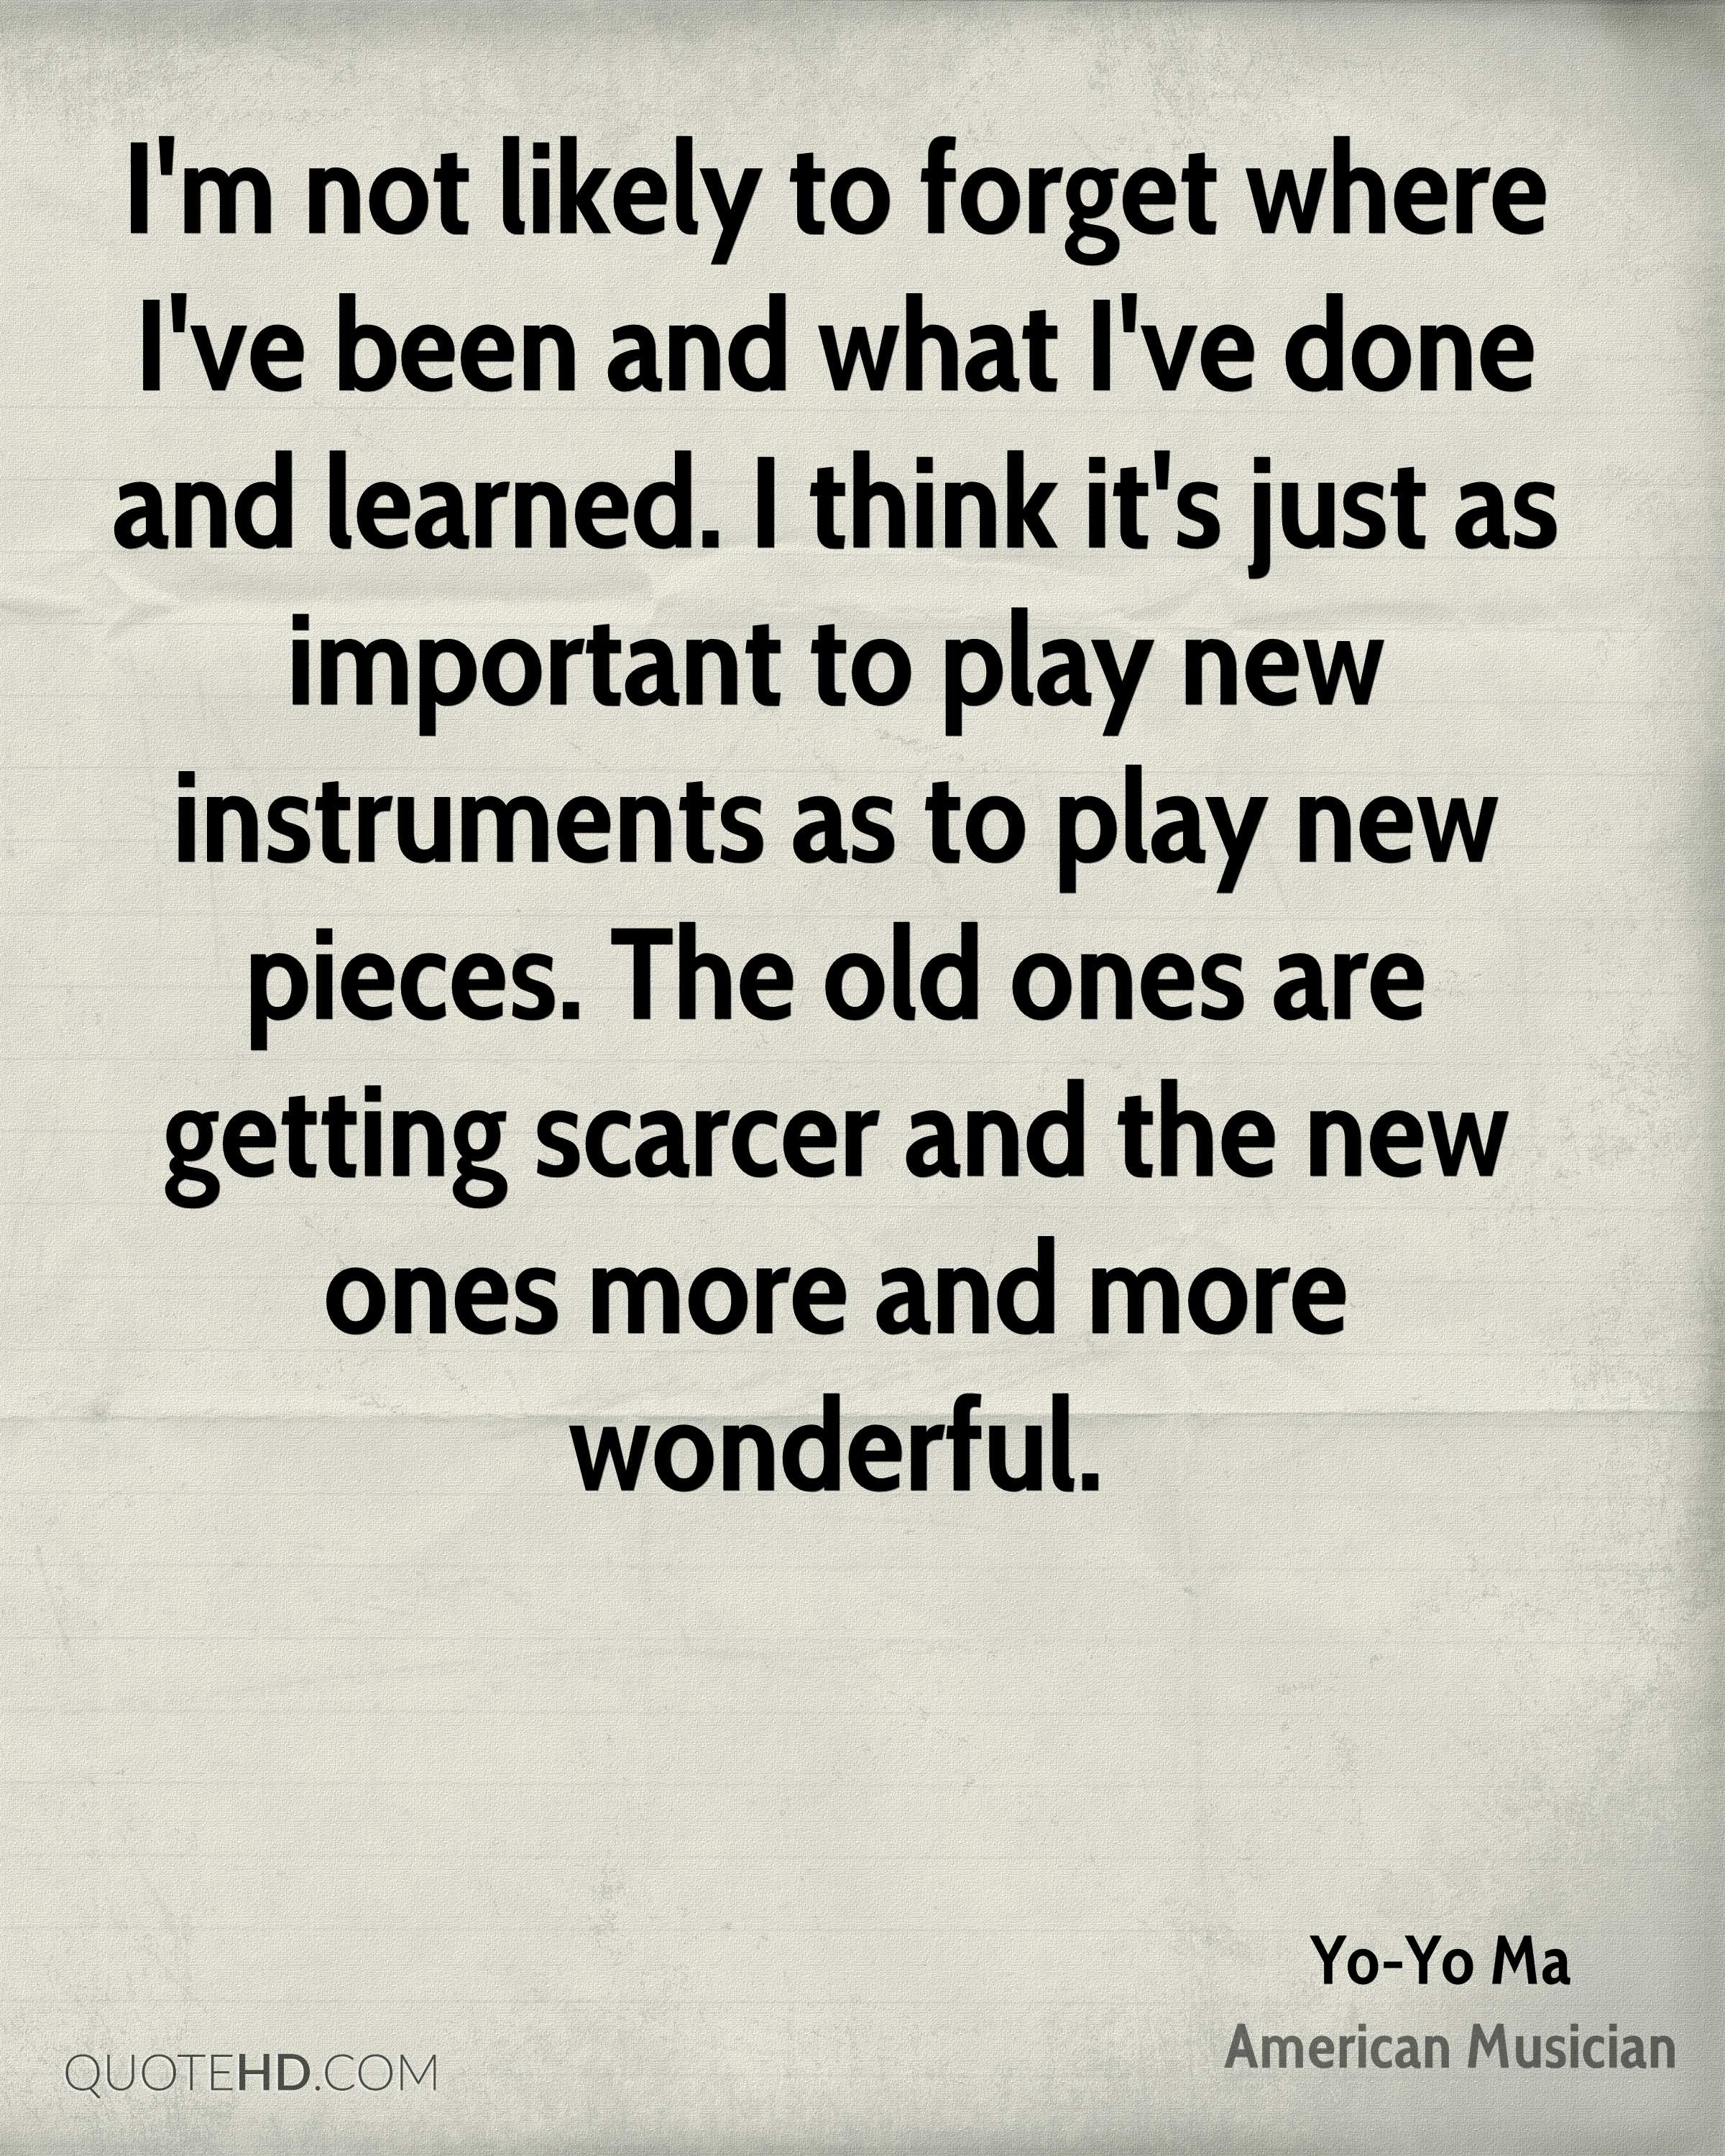 I'm not likely to forget where I've been and what I've done and learned. I think it's just as important to play new instruments as to play new pieces. The old ones are getting scarcer and the new ones more and more wonderful.